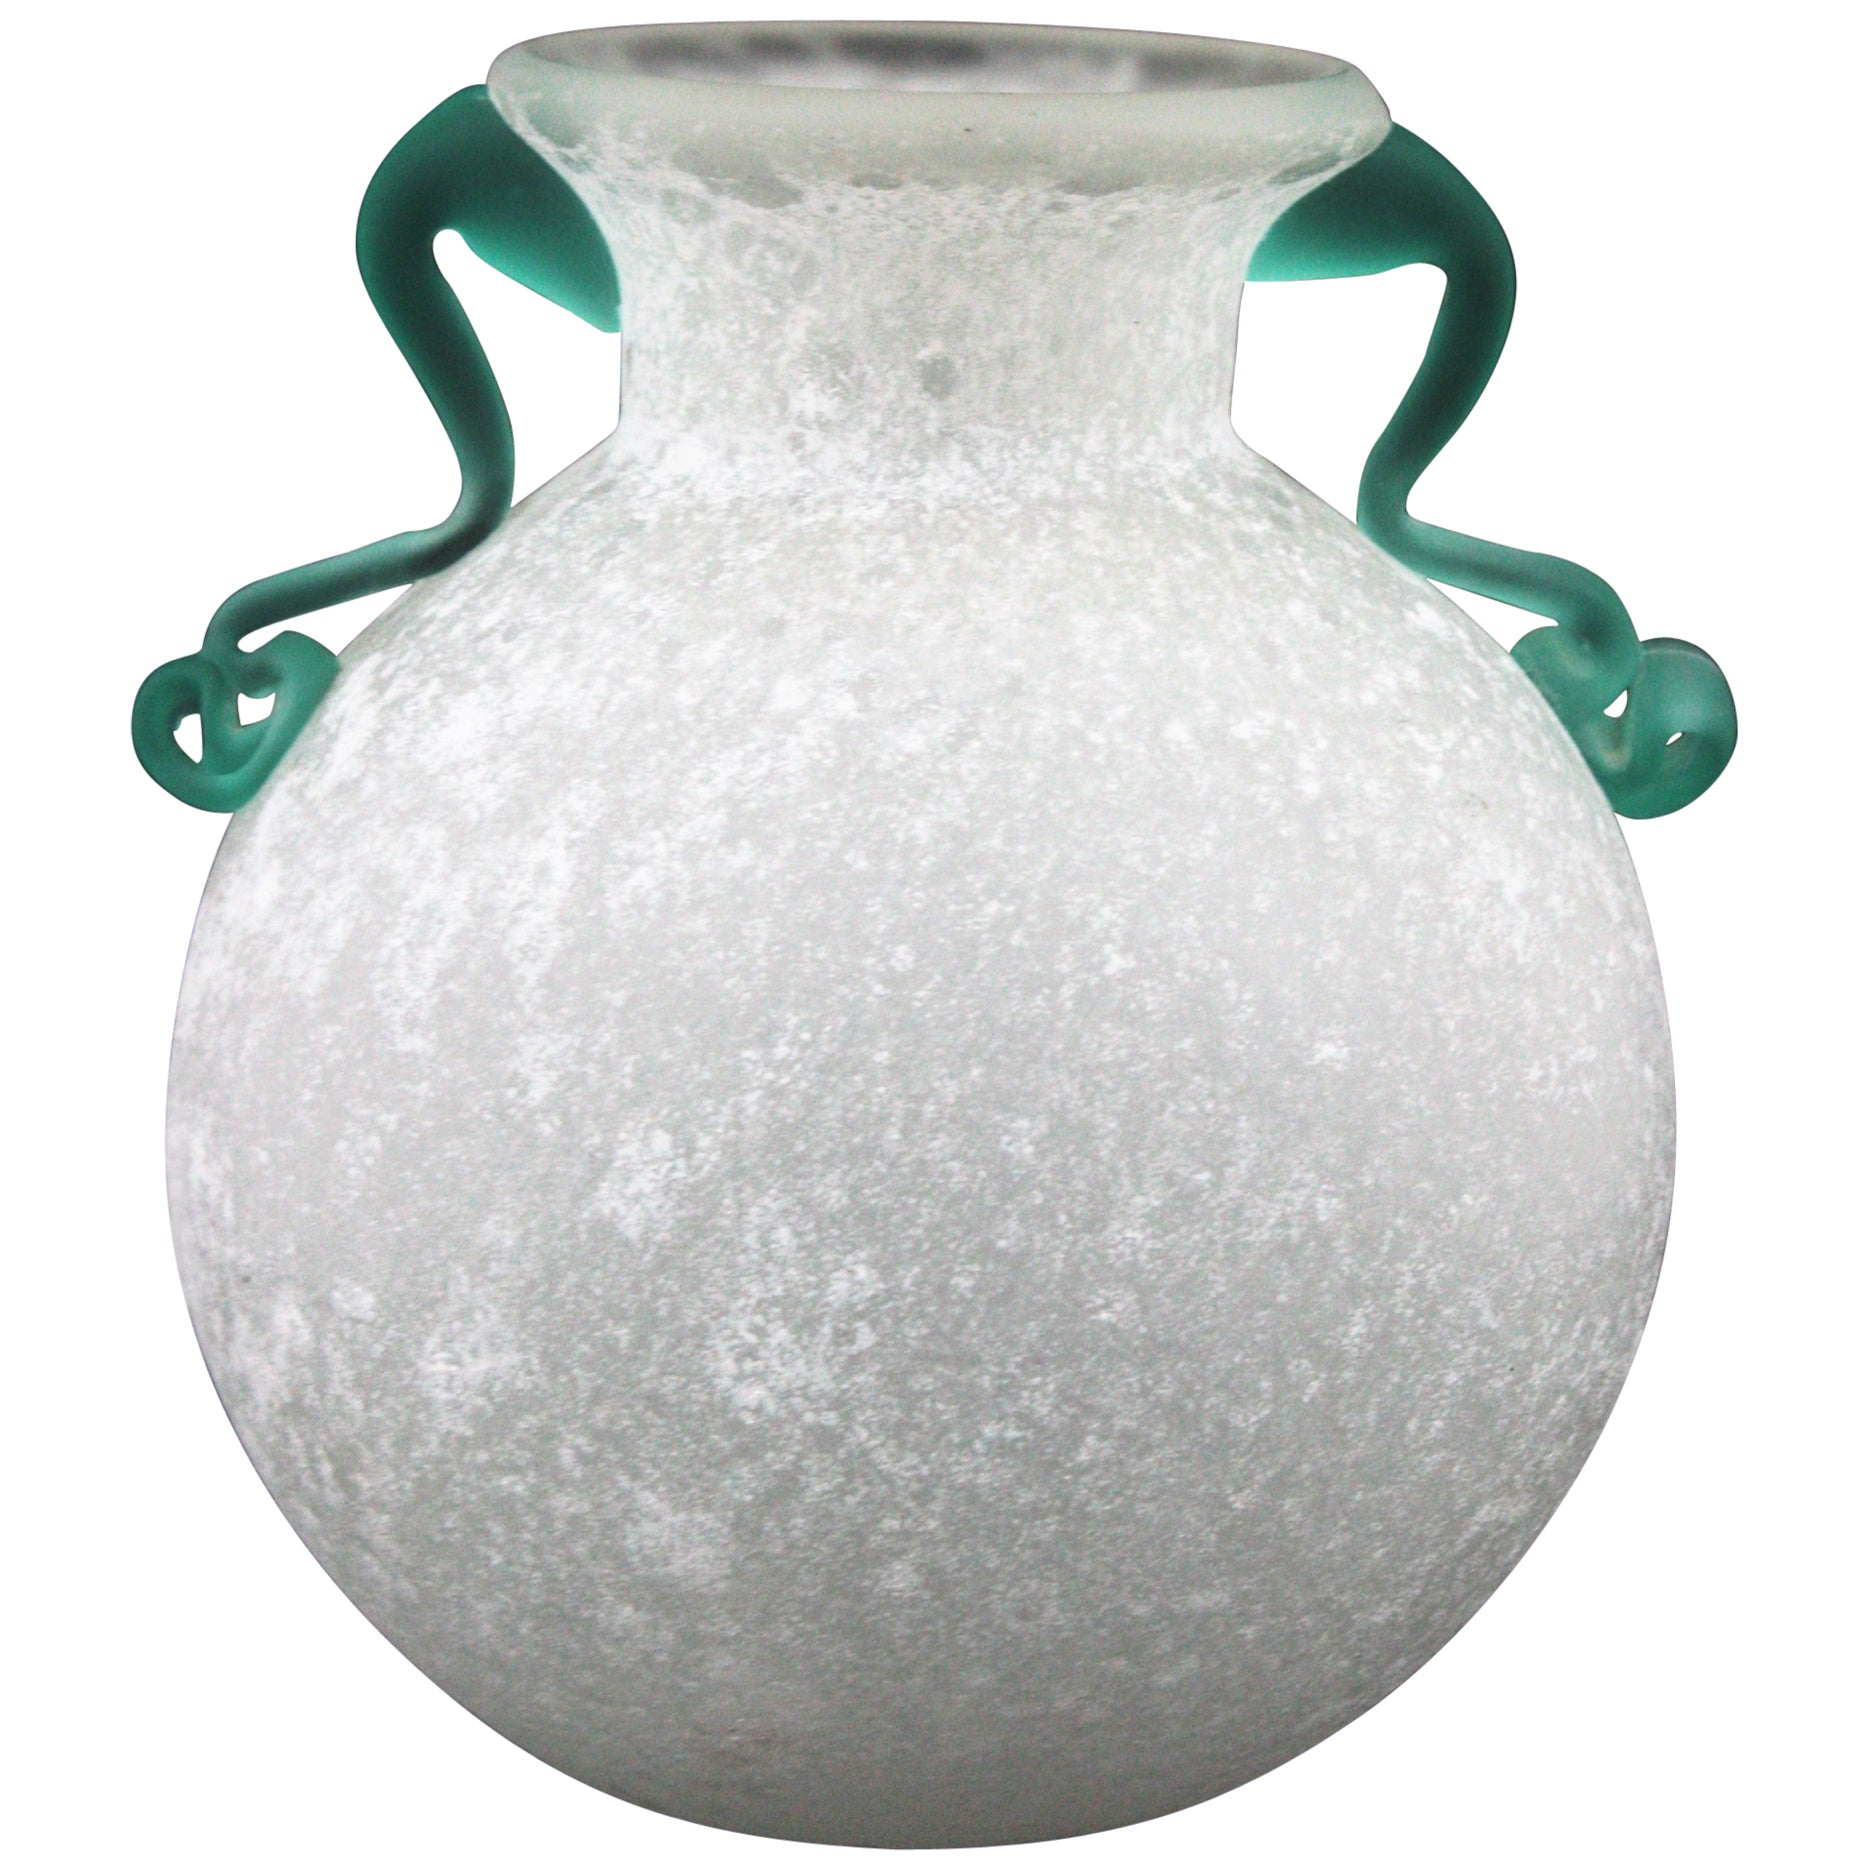 Archimede Seguso Scavo Corroso Art Glass Vase with Handles, Italy, 1960s